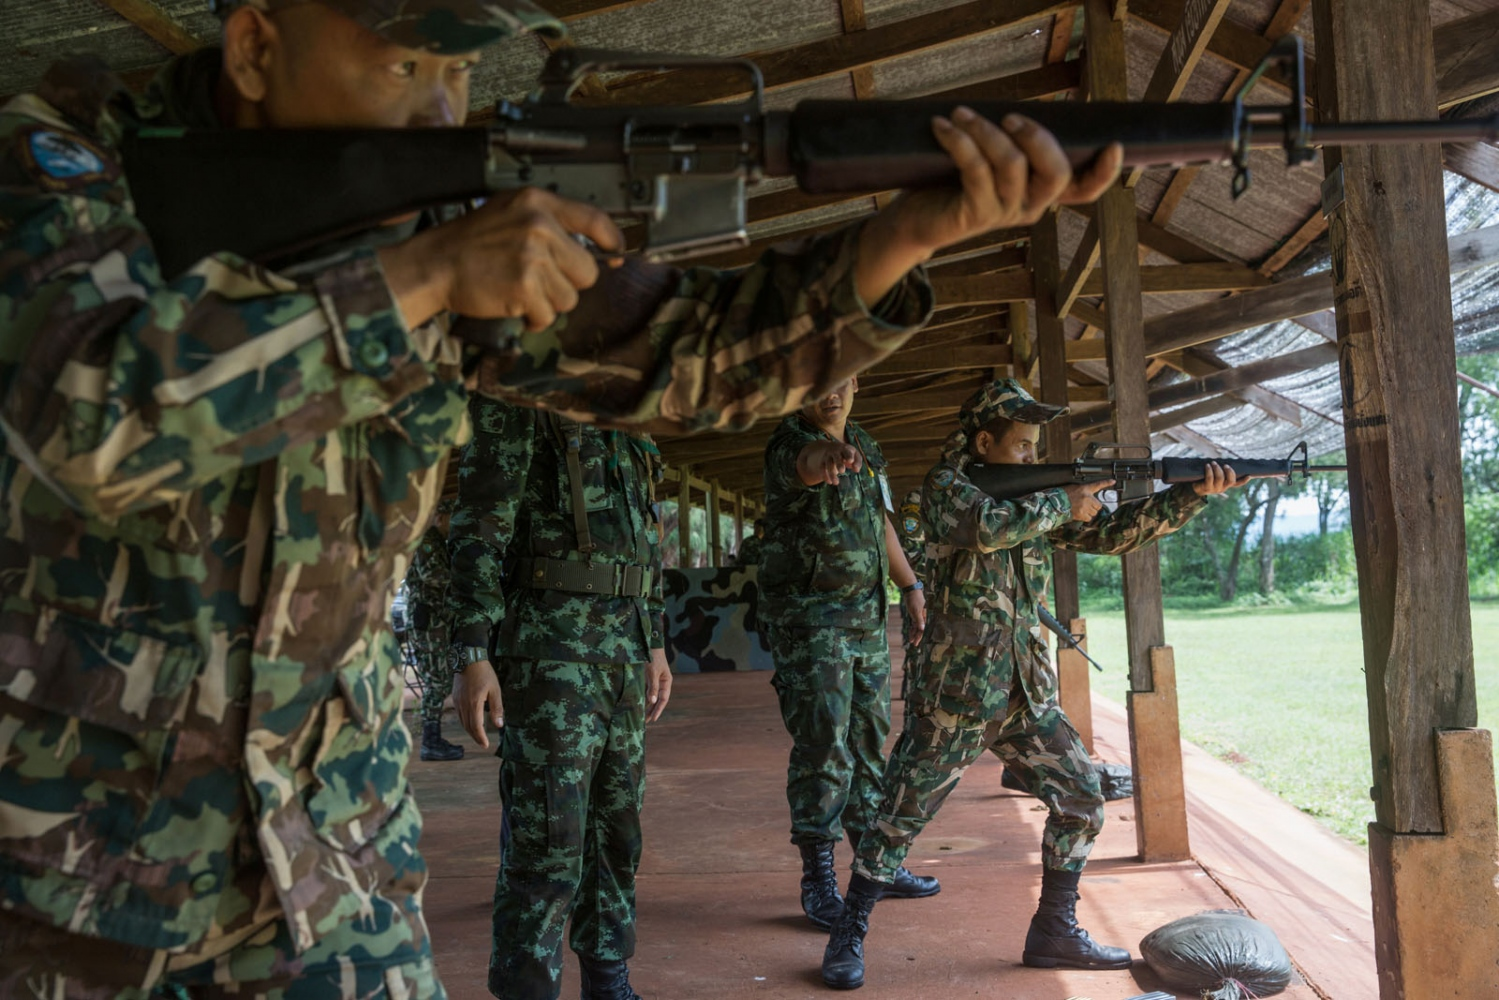 Forest rangers brush up their shooting skills at a nearby army base. Ta Praya National Park, Sa Kaew Province - September 2018